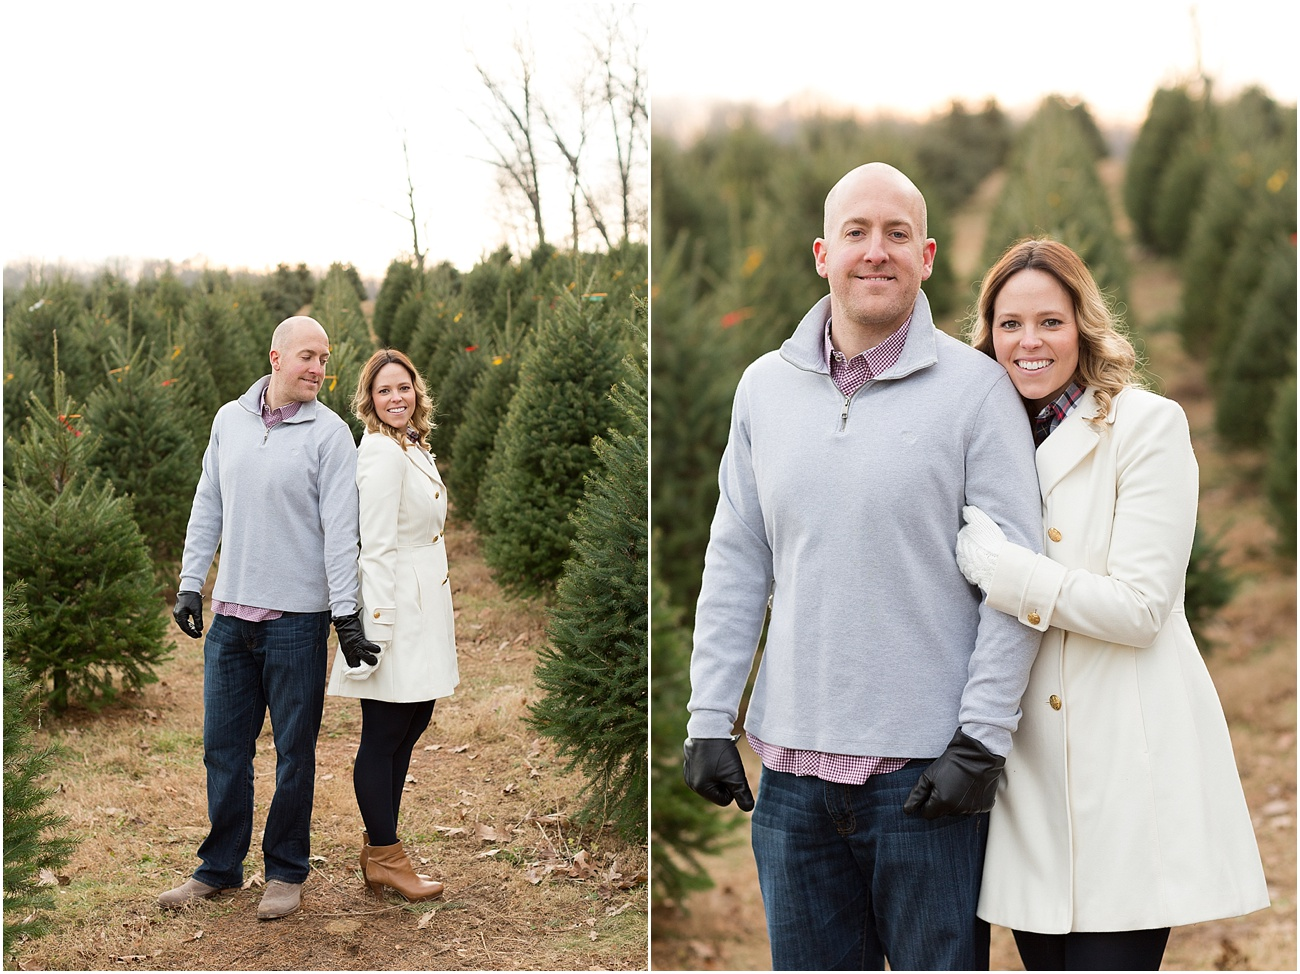 Pine_Valley_Farms_Engagement_Maryland_Wedding_Photographer_0021